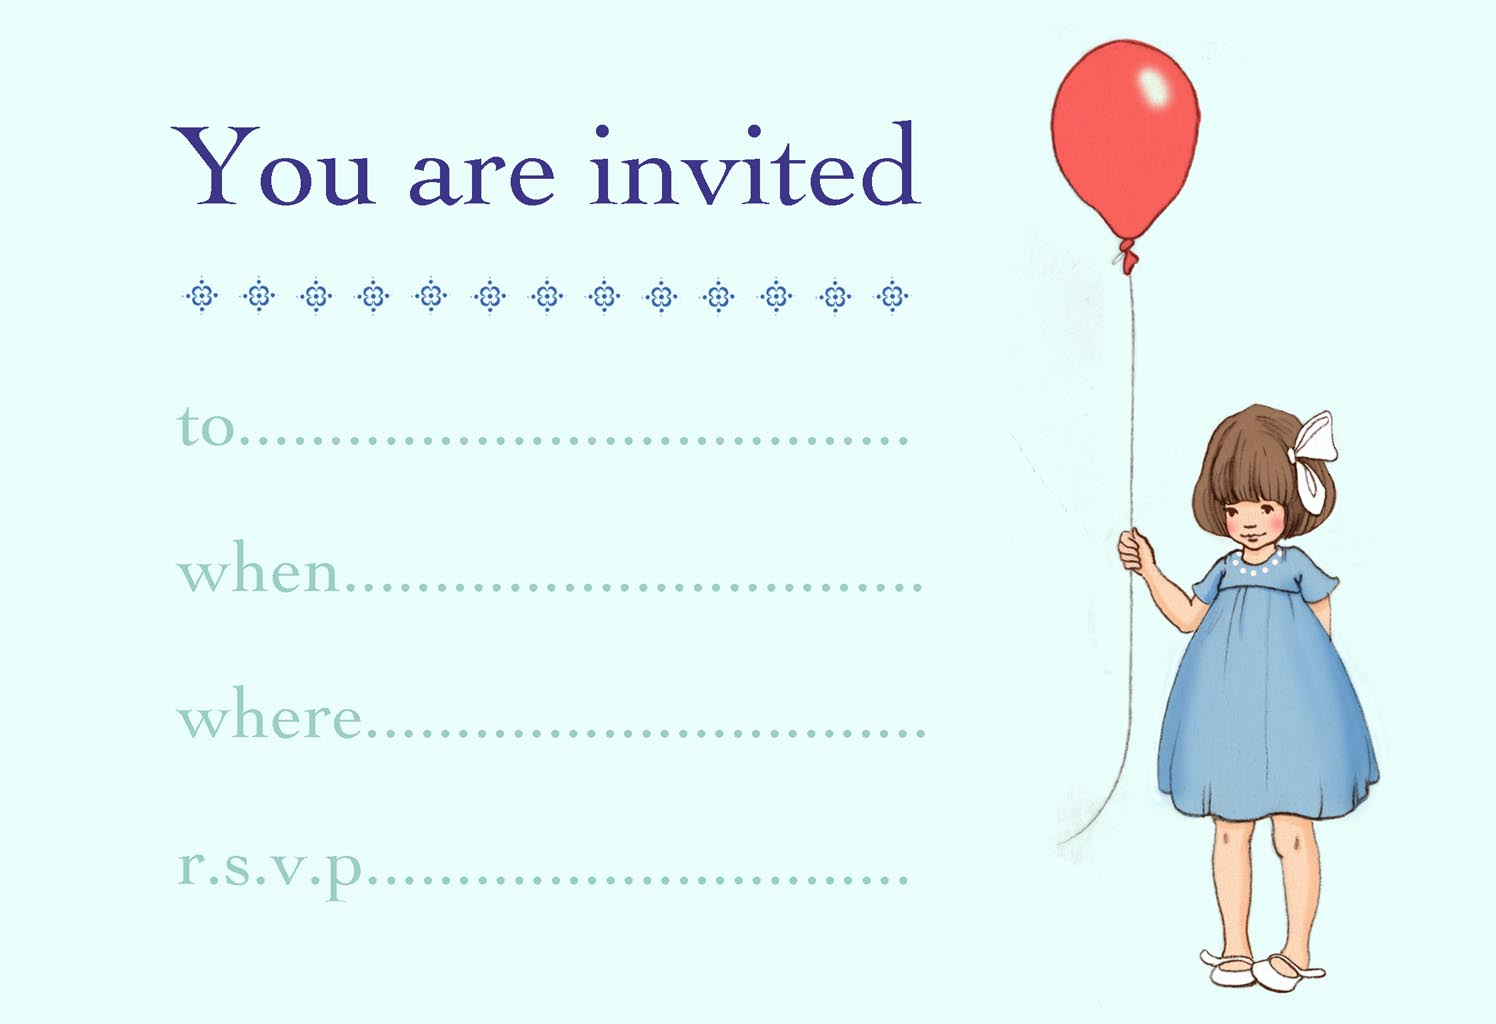 Pirate Party Invites with great invitation ideas